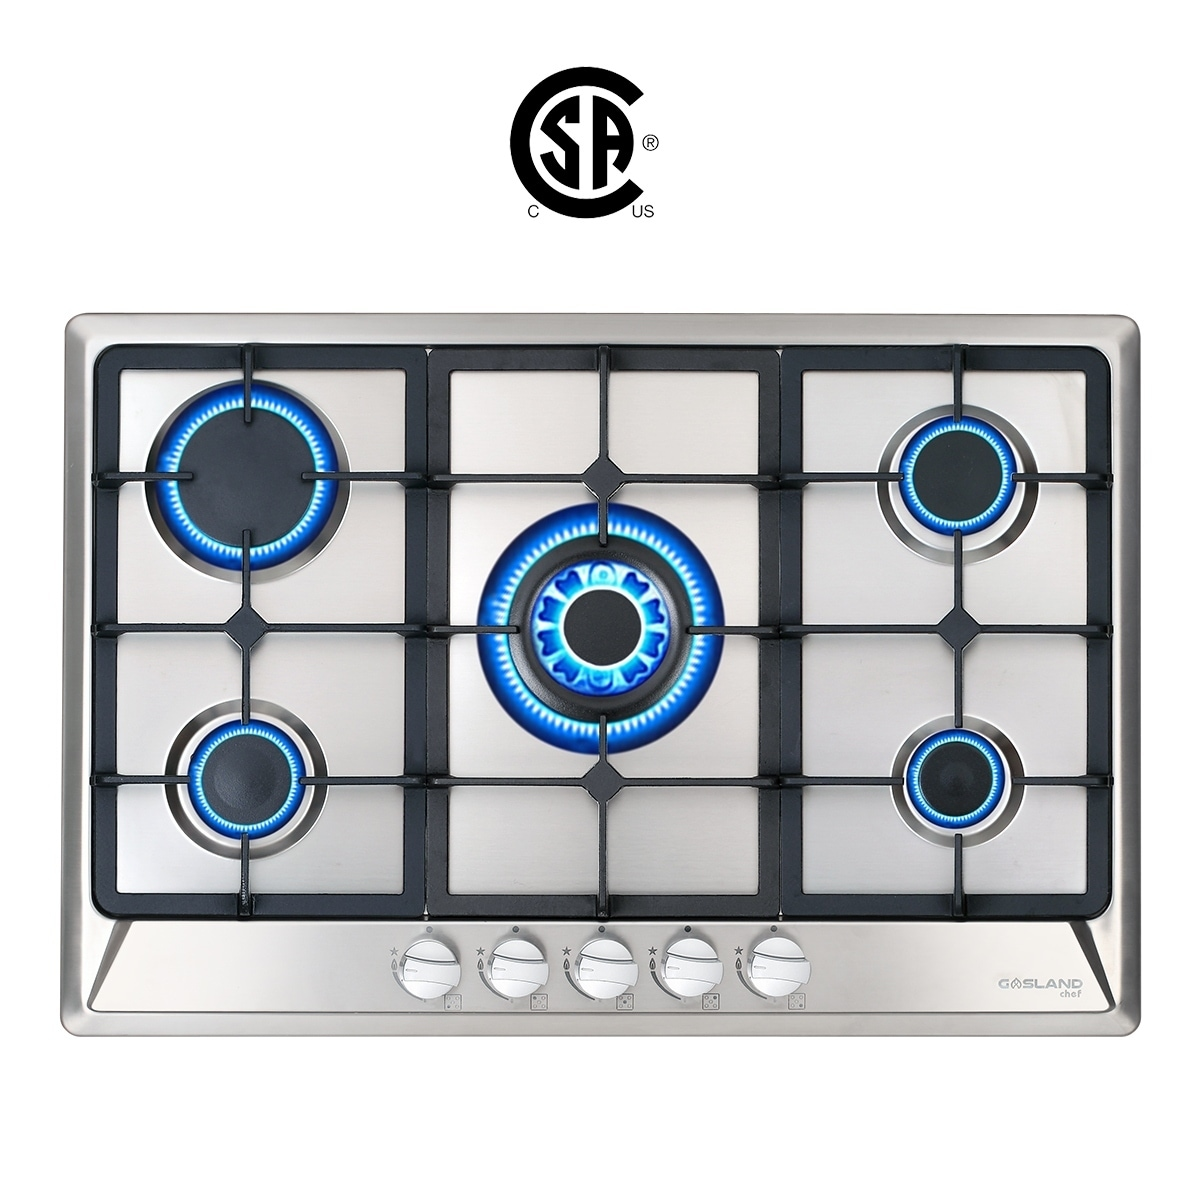 Gas Stove Top with 5 Sealed Burners Easy To Clean Thermocouple Protection Gasland chef GH90SF 36 Built-in Gas Stove Top Gas Cooktop Stainless Steel LPG Natural Gas Cooktop ETL Safety Certified